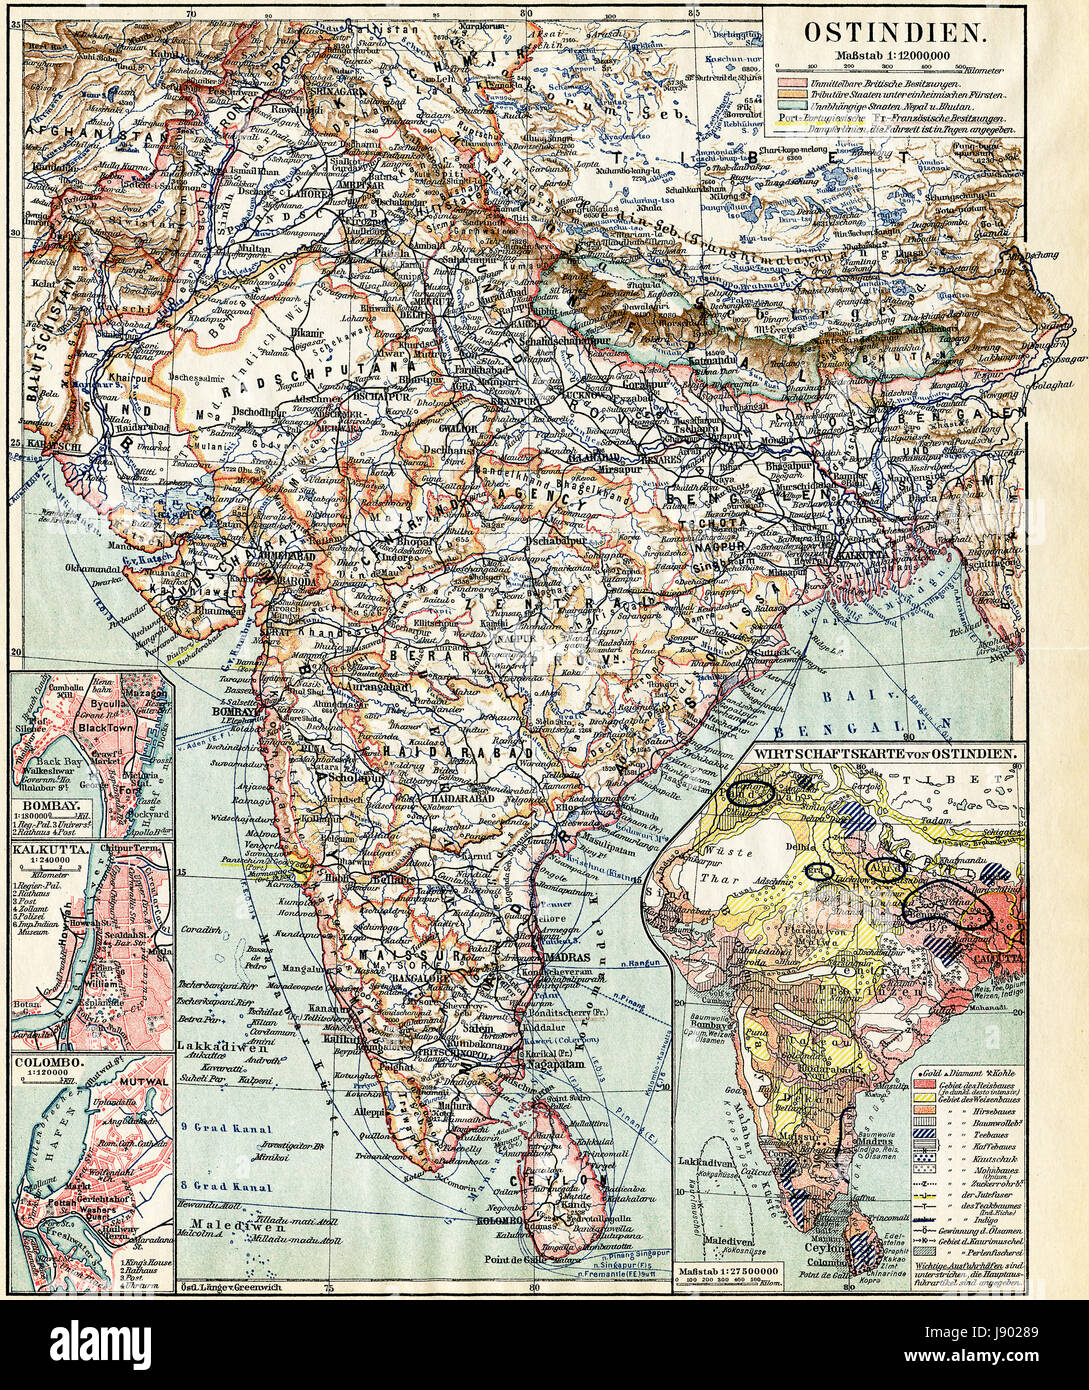 india map atlas map of the world city town colour mountains